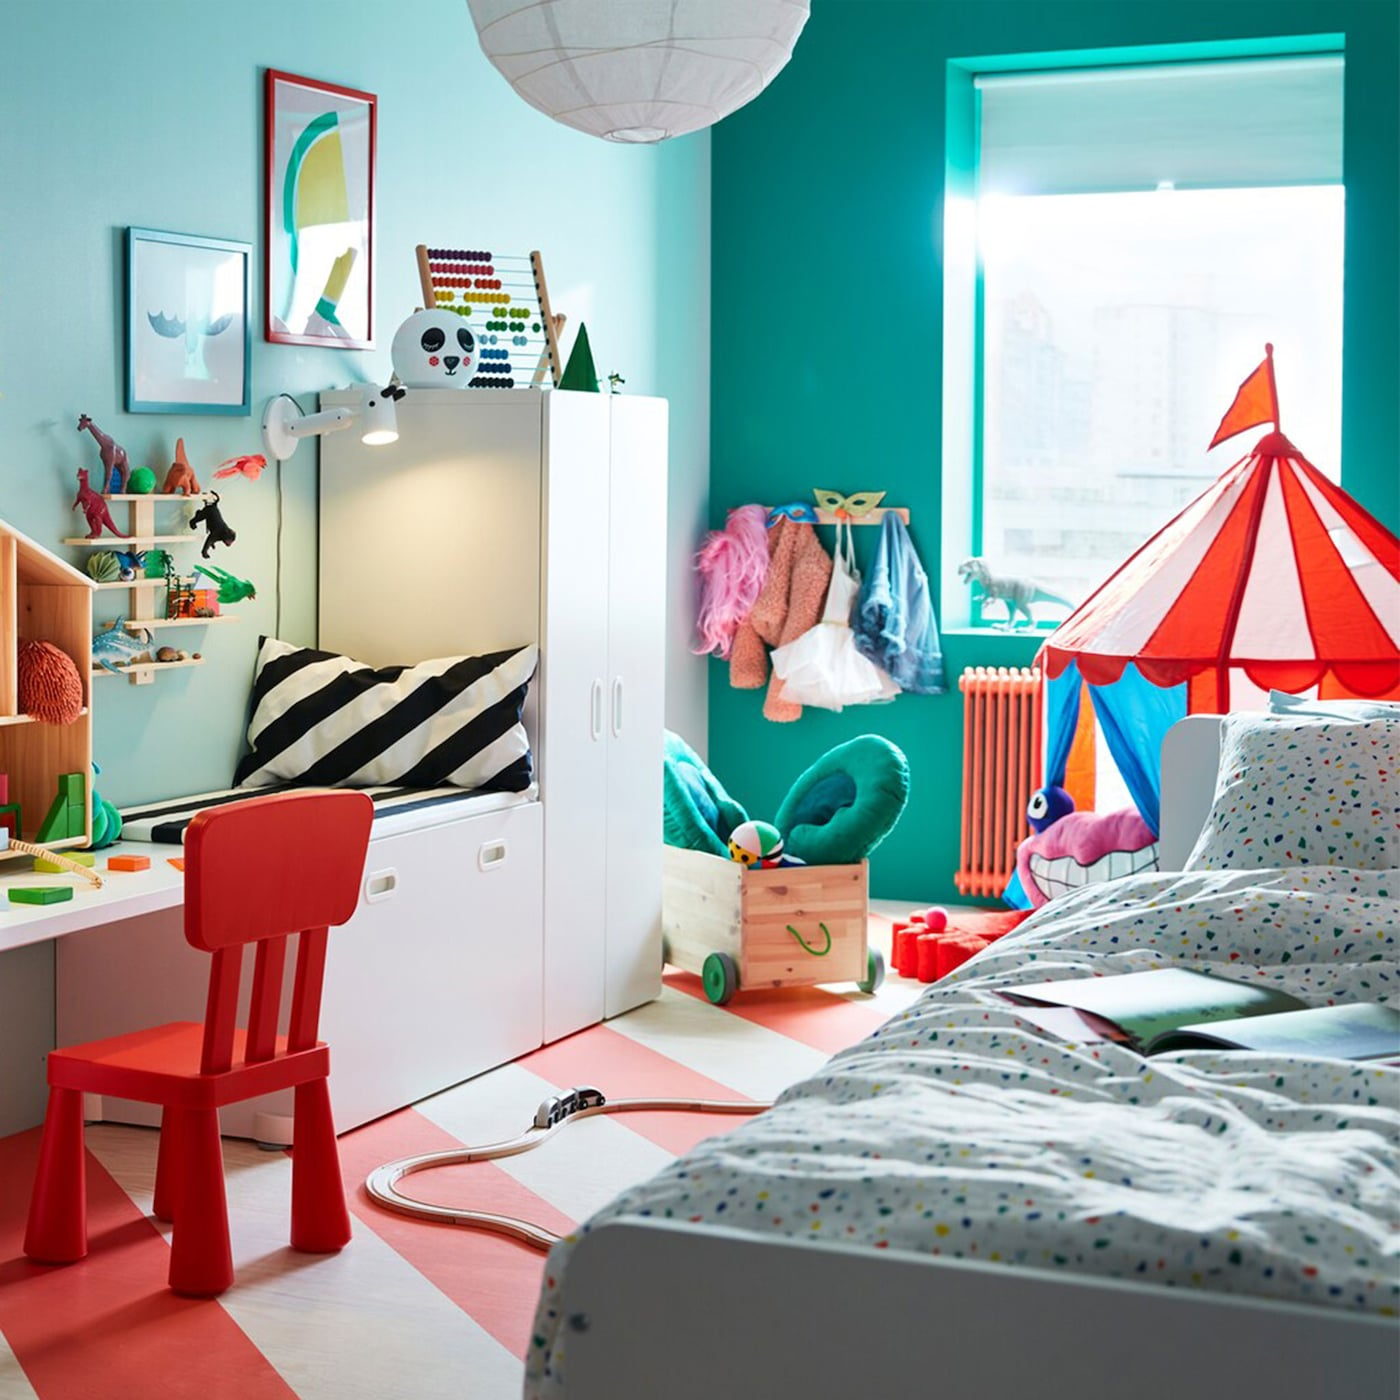 Playroom paradise for two children - IKEA